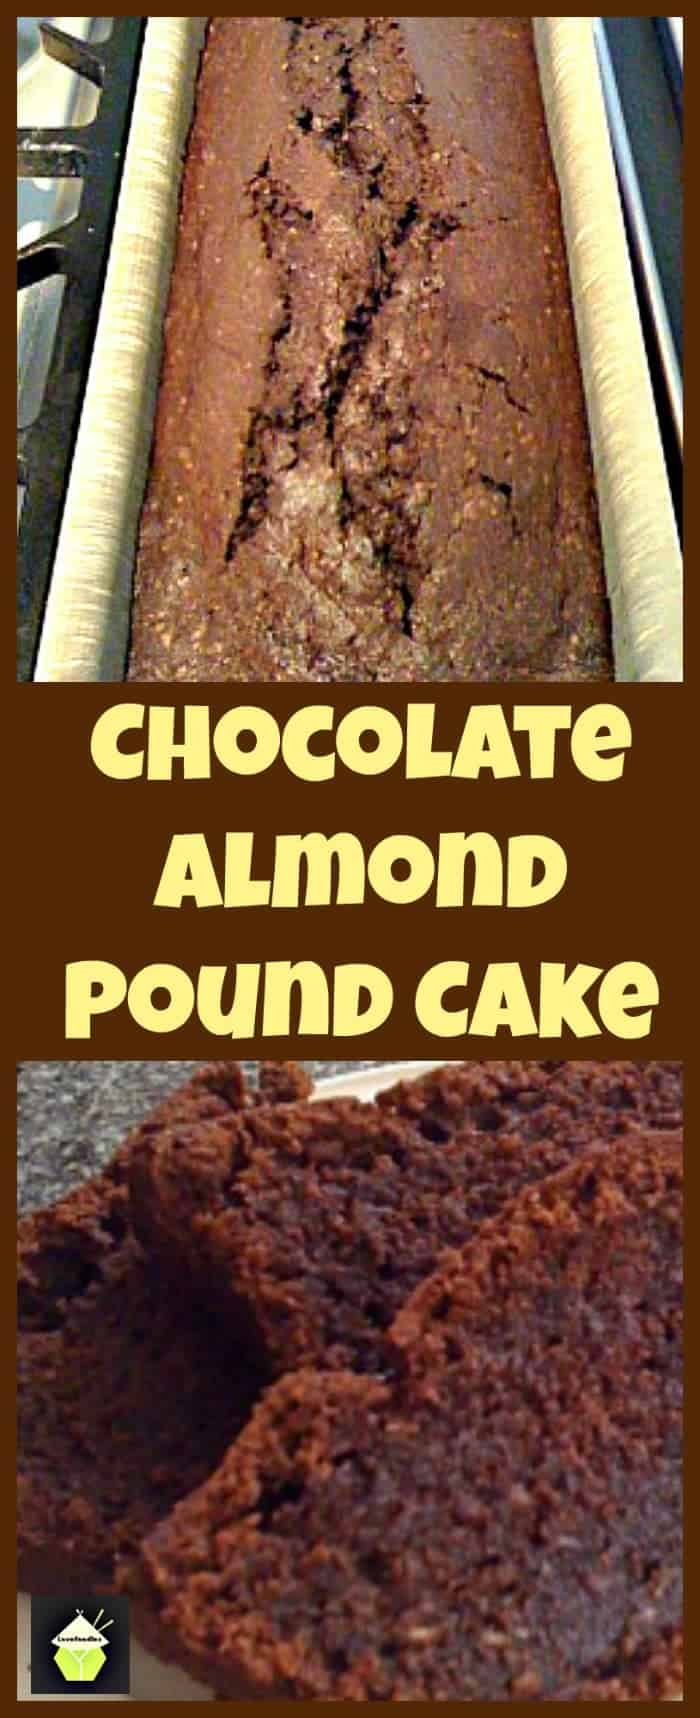 Moist Chocolate Almond Pound Cake. Delicious, rich chocolate cake with added melted chocolate and ground almonds to take this cake to another level of deliciousness!